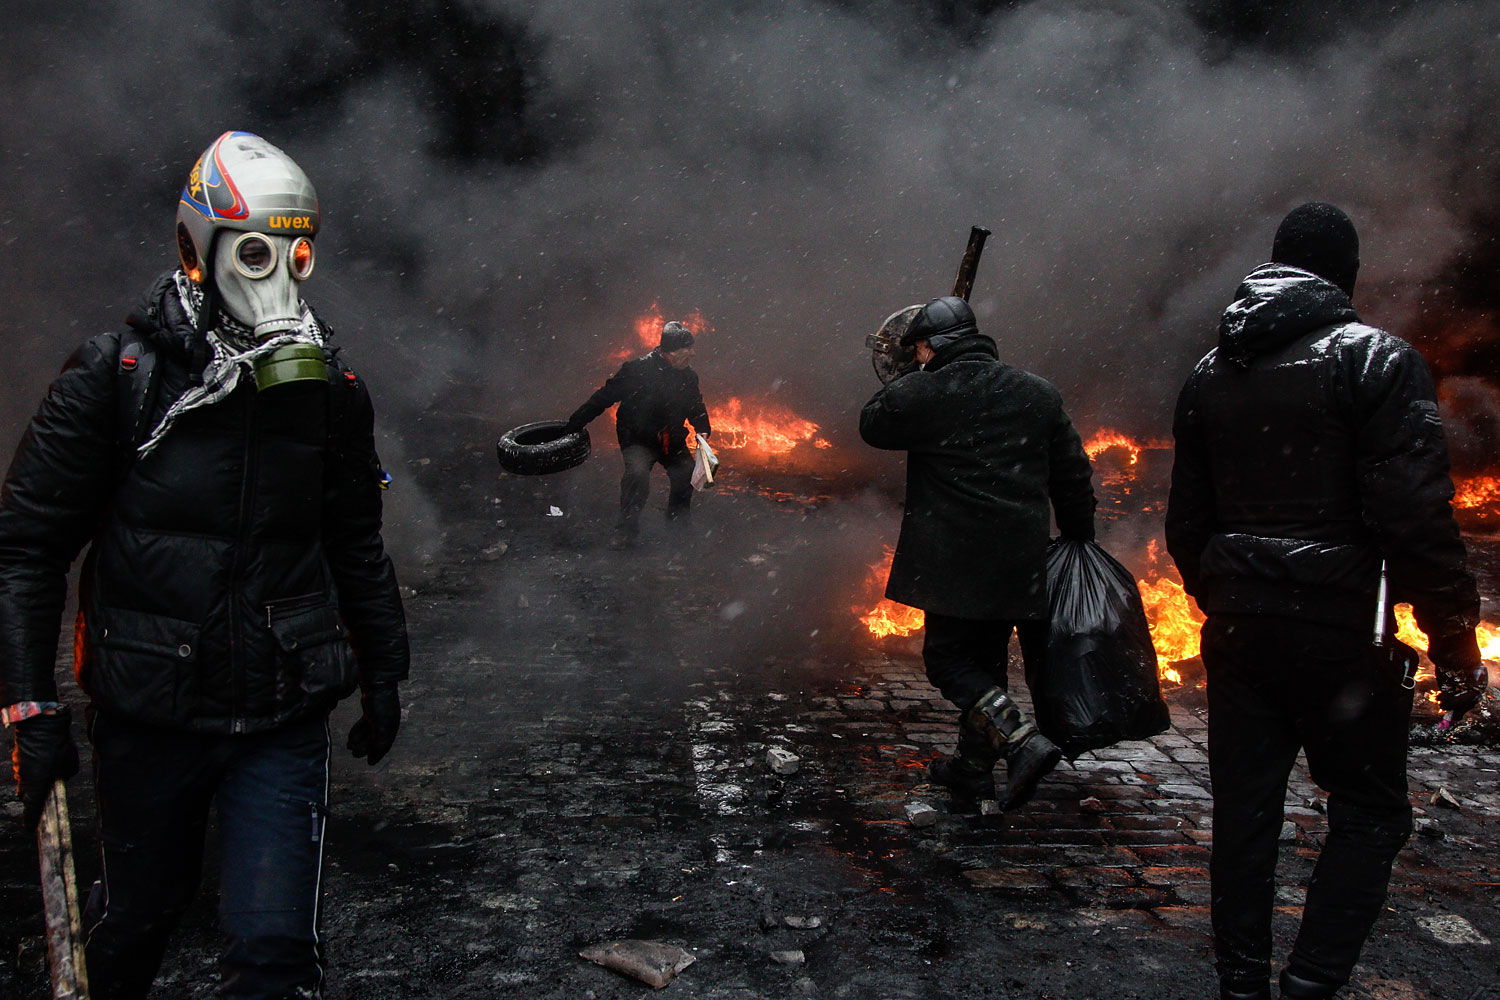 An opposition supporter wears a gas mask during clashes between riot police and anti-government demonstrators in central Kiev, Jan, 22, 2014.